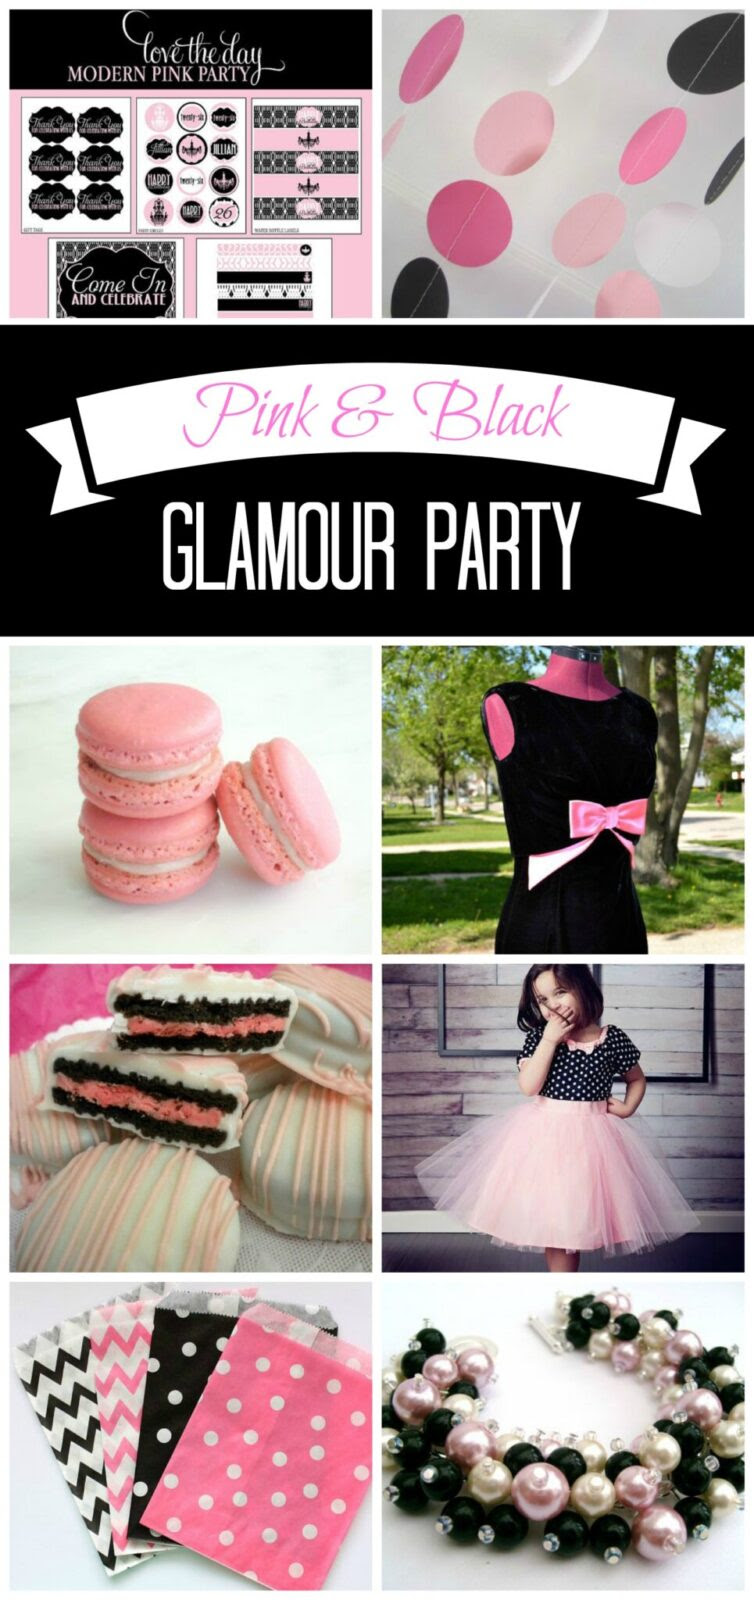 Inspiration 36 Pink And Black Glamour Party Ideas